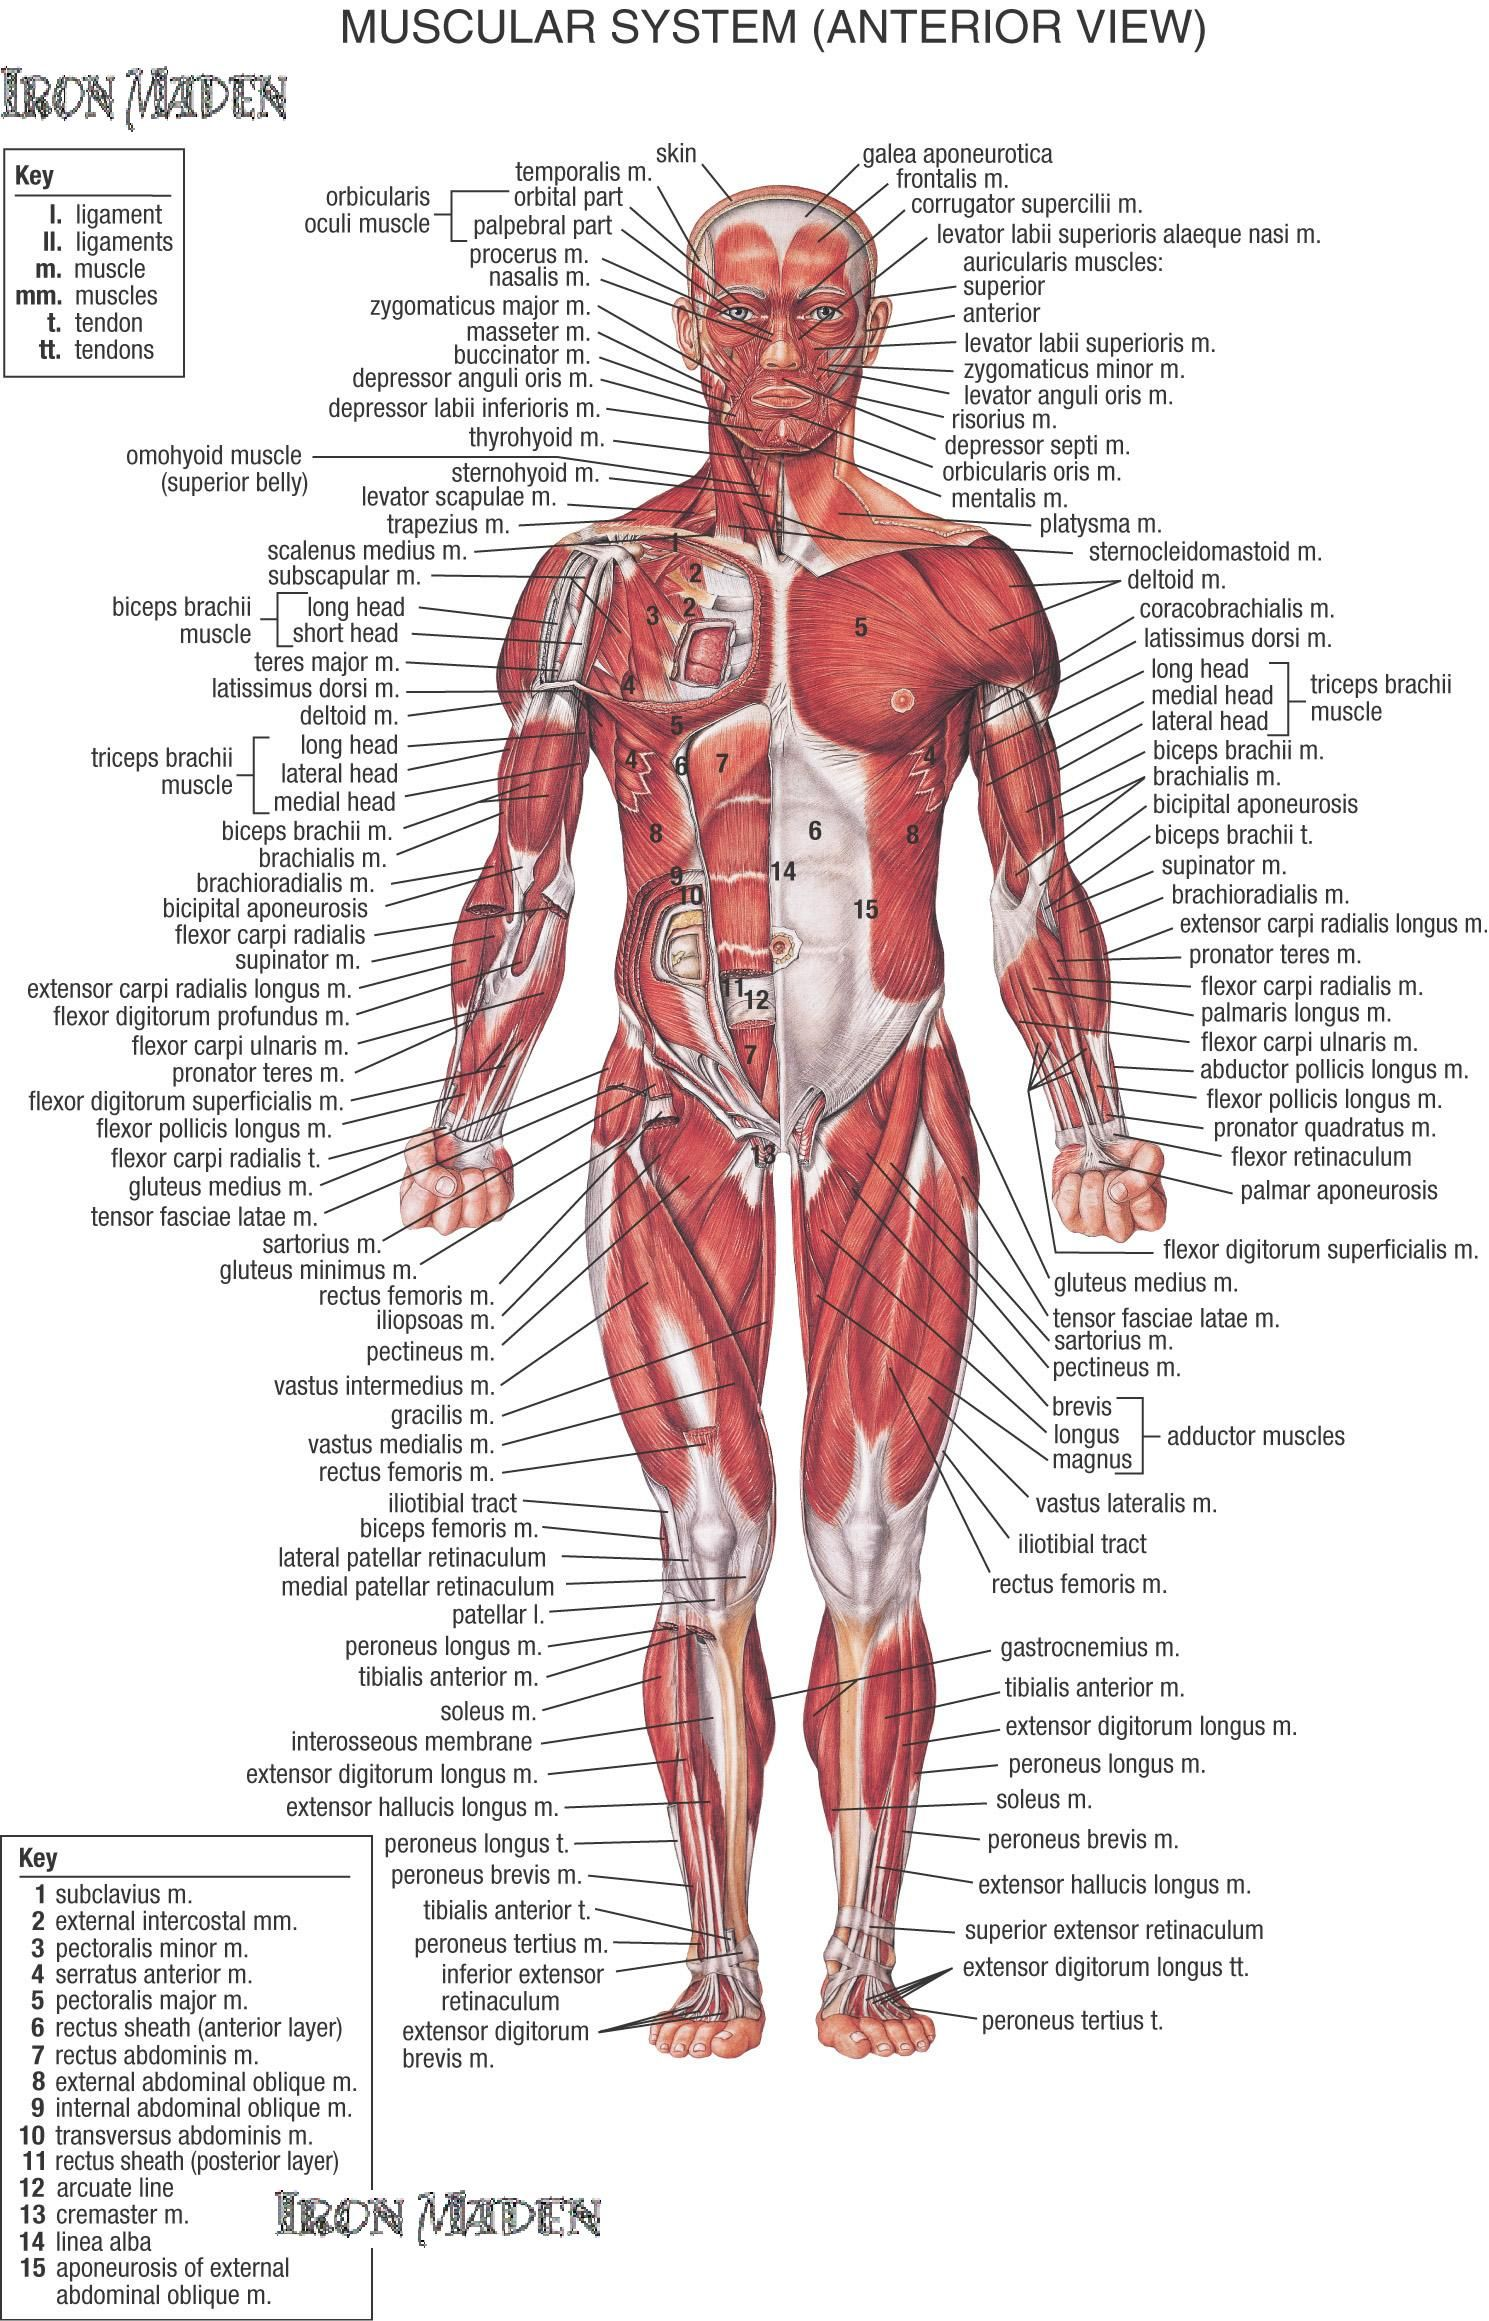 Anatomy Of Human Muscles Life In General Pinterest Muscles